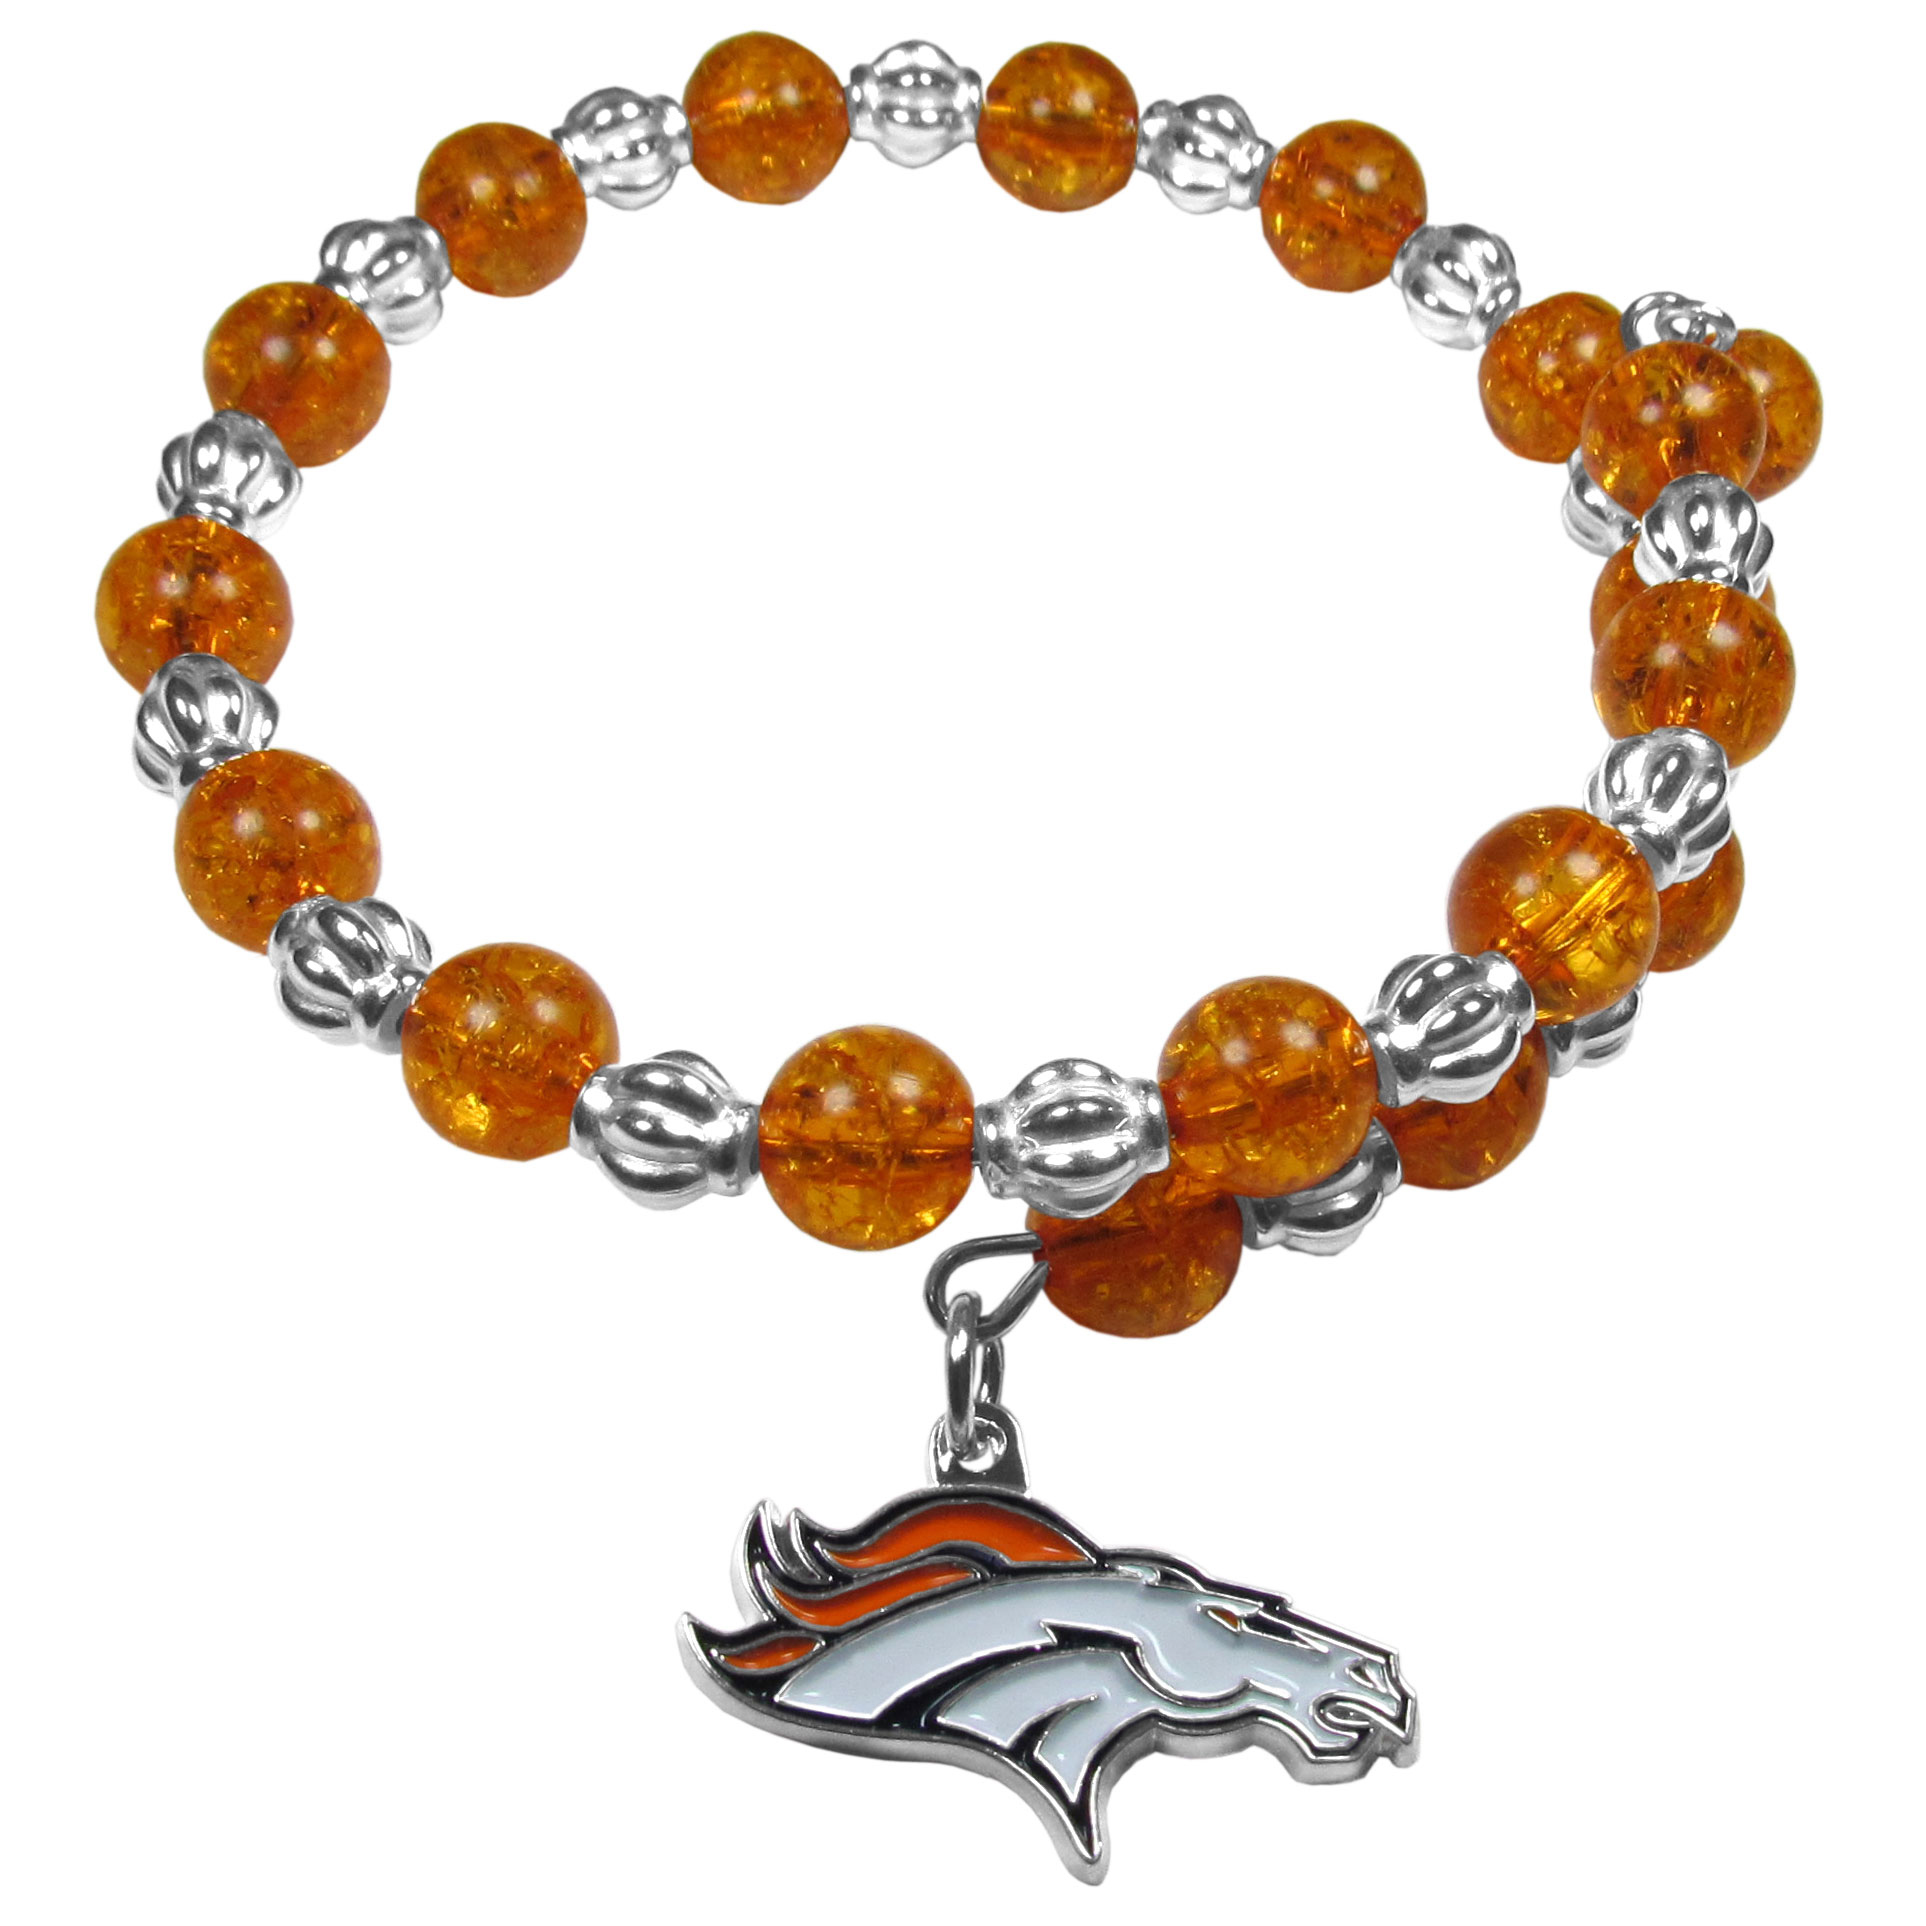 Denver Broncos Bead Memory Wire Bracelet - Our Denver Broncos memory wire bead bracelet is trendy way to show off your love of the game. The double wrap bracelet is completely covered in 7.5 mm crystals that are broken up with silvertoned beads creating a designer look with a sporty twist. The bracelet features a fully cast, metal team charm that has expertly enameled team colors. This fashion jewelry piece is a must-have for the die-hard fan that chic look that can dress up any outfit.